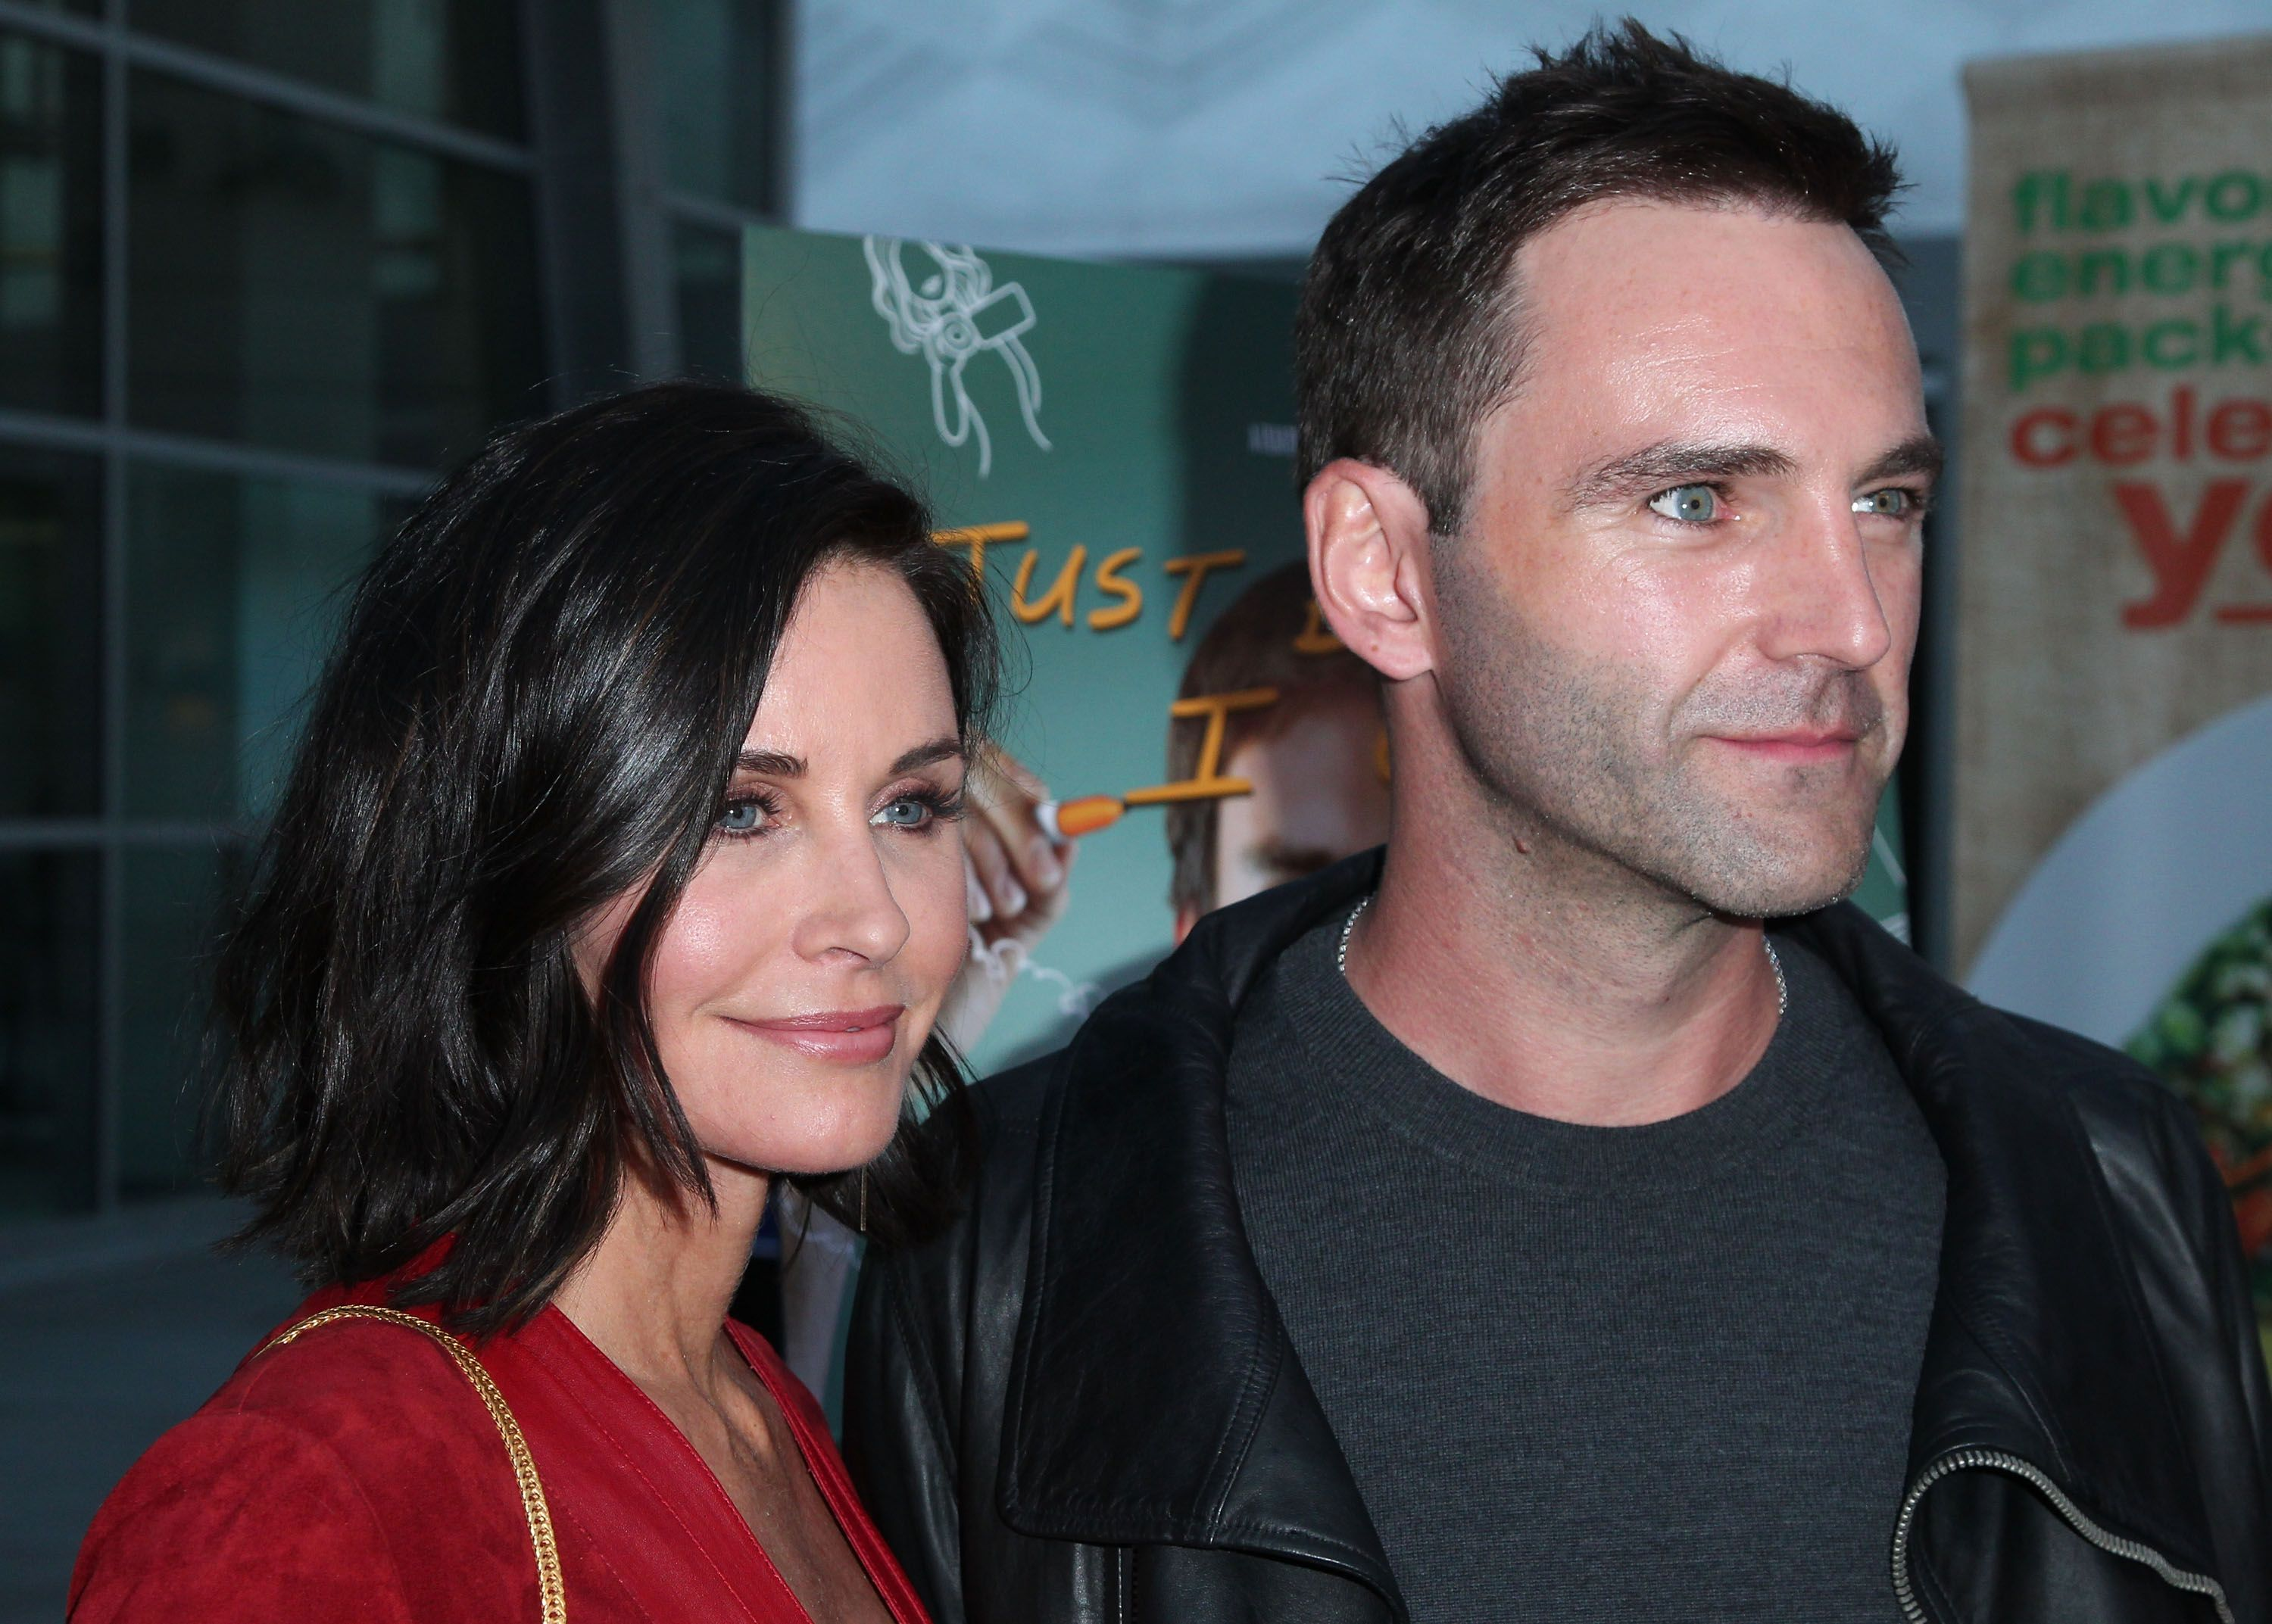 """Courteney Cox and Johnny McDaid at the premiere of """"Just Before I Go"""" in 2015 in Hollywood, California 